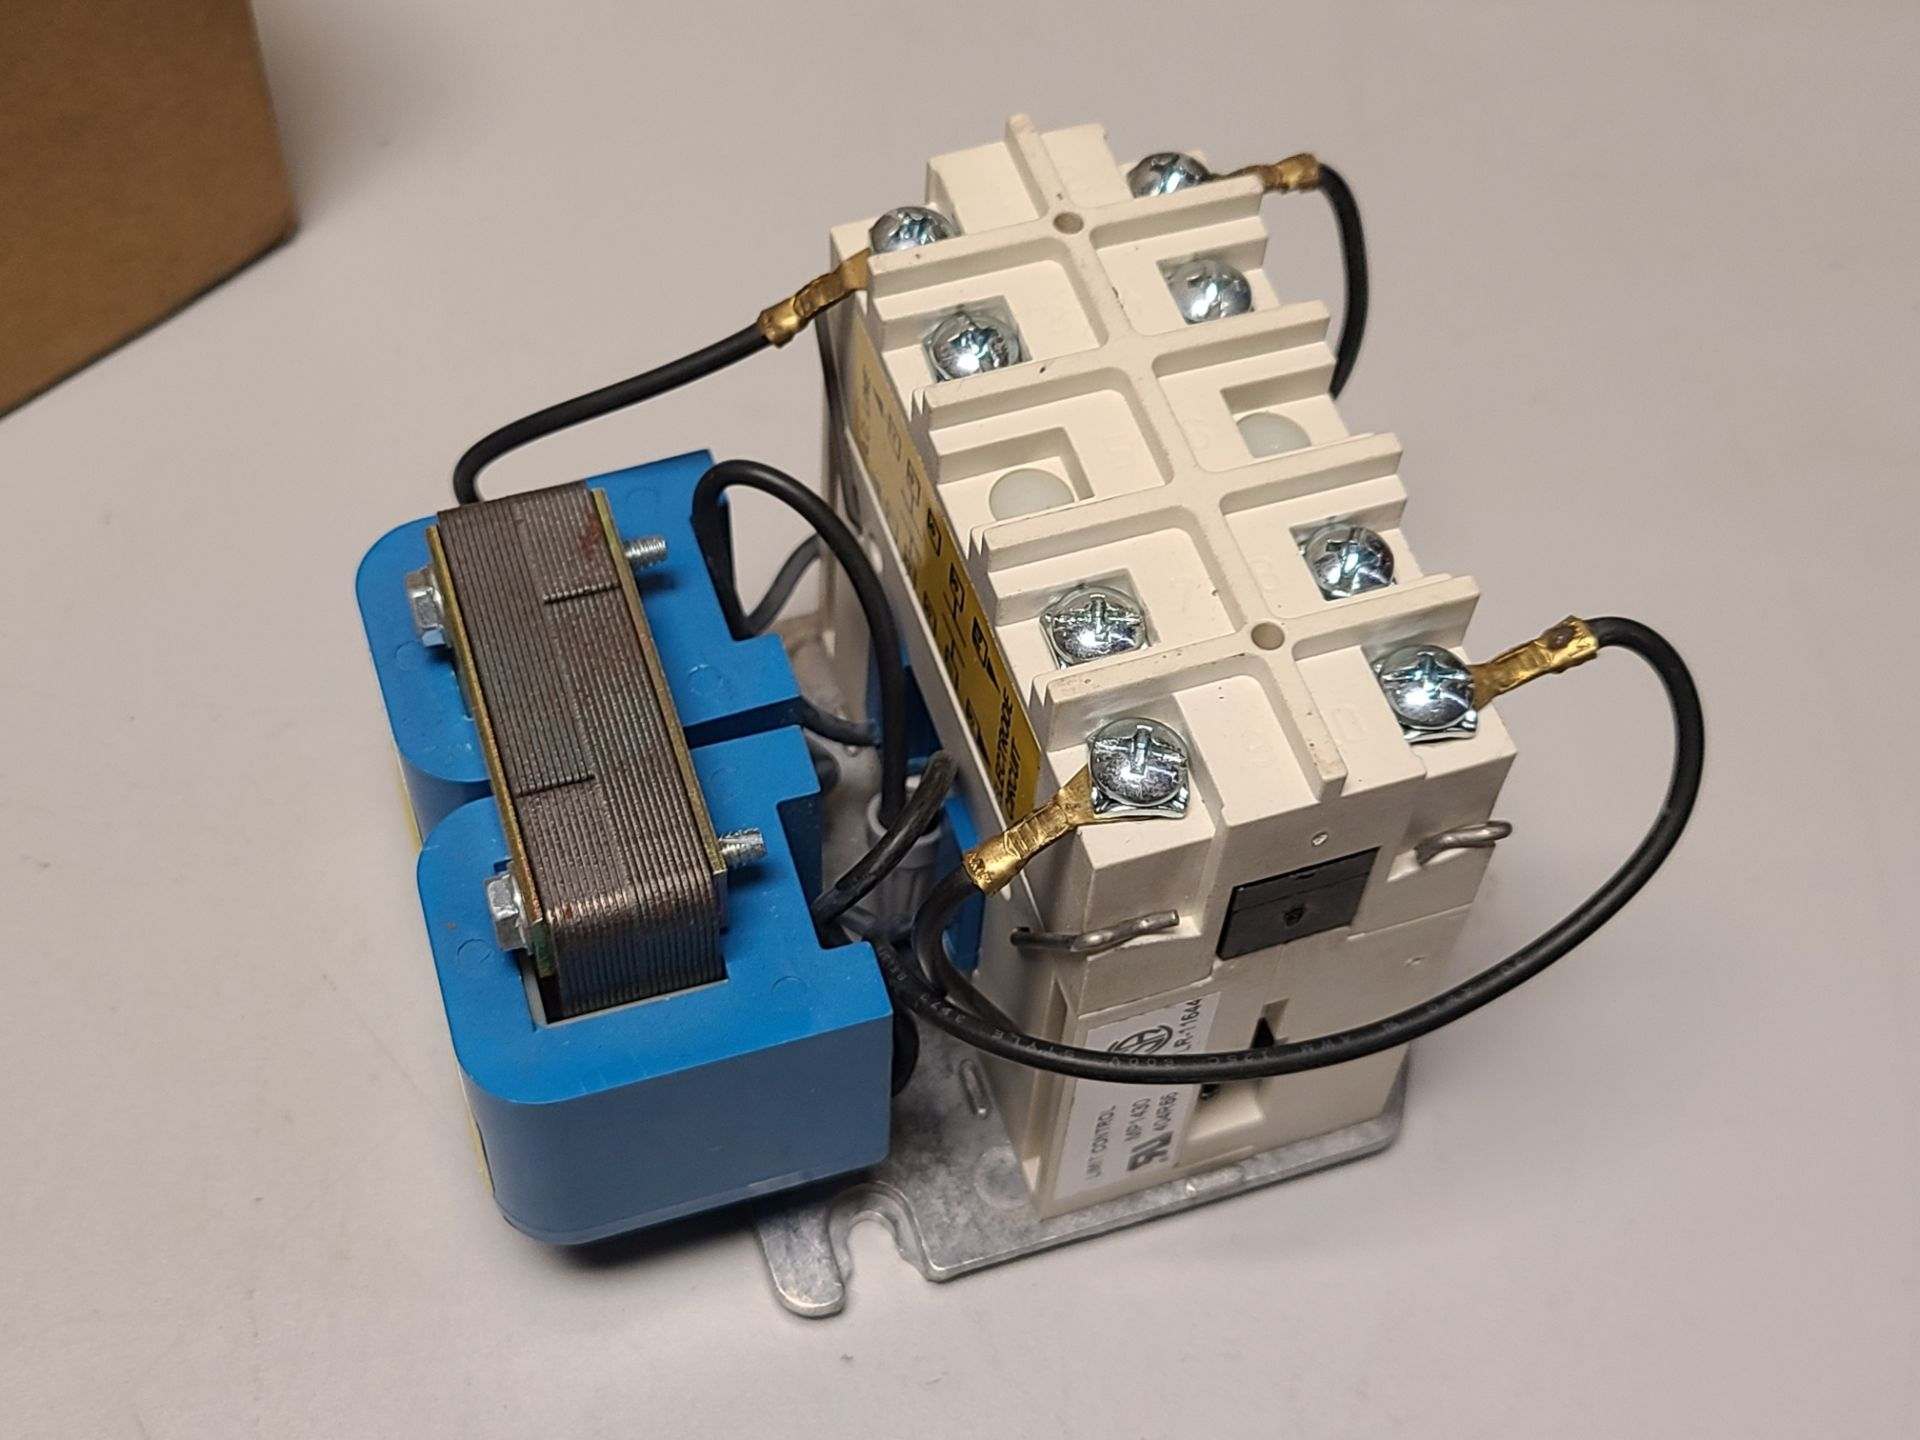 NEW WARRICK/GEMS CONTROL RELAY - Image 3 of 5